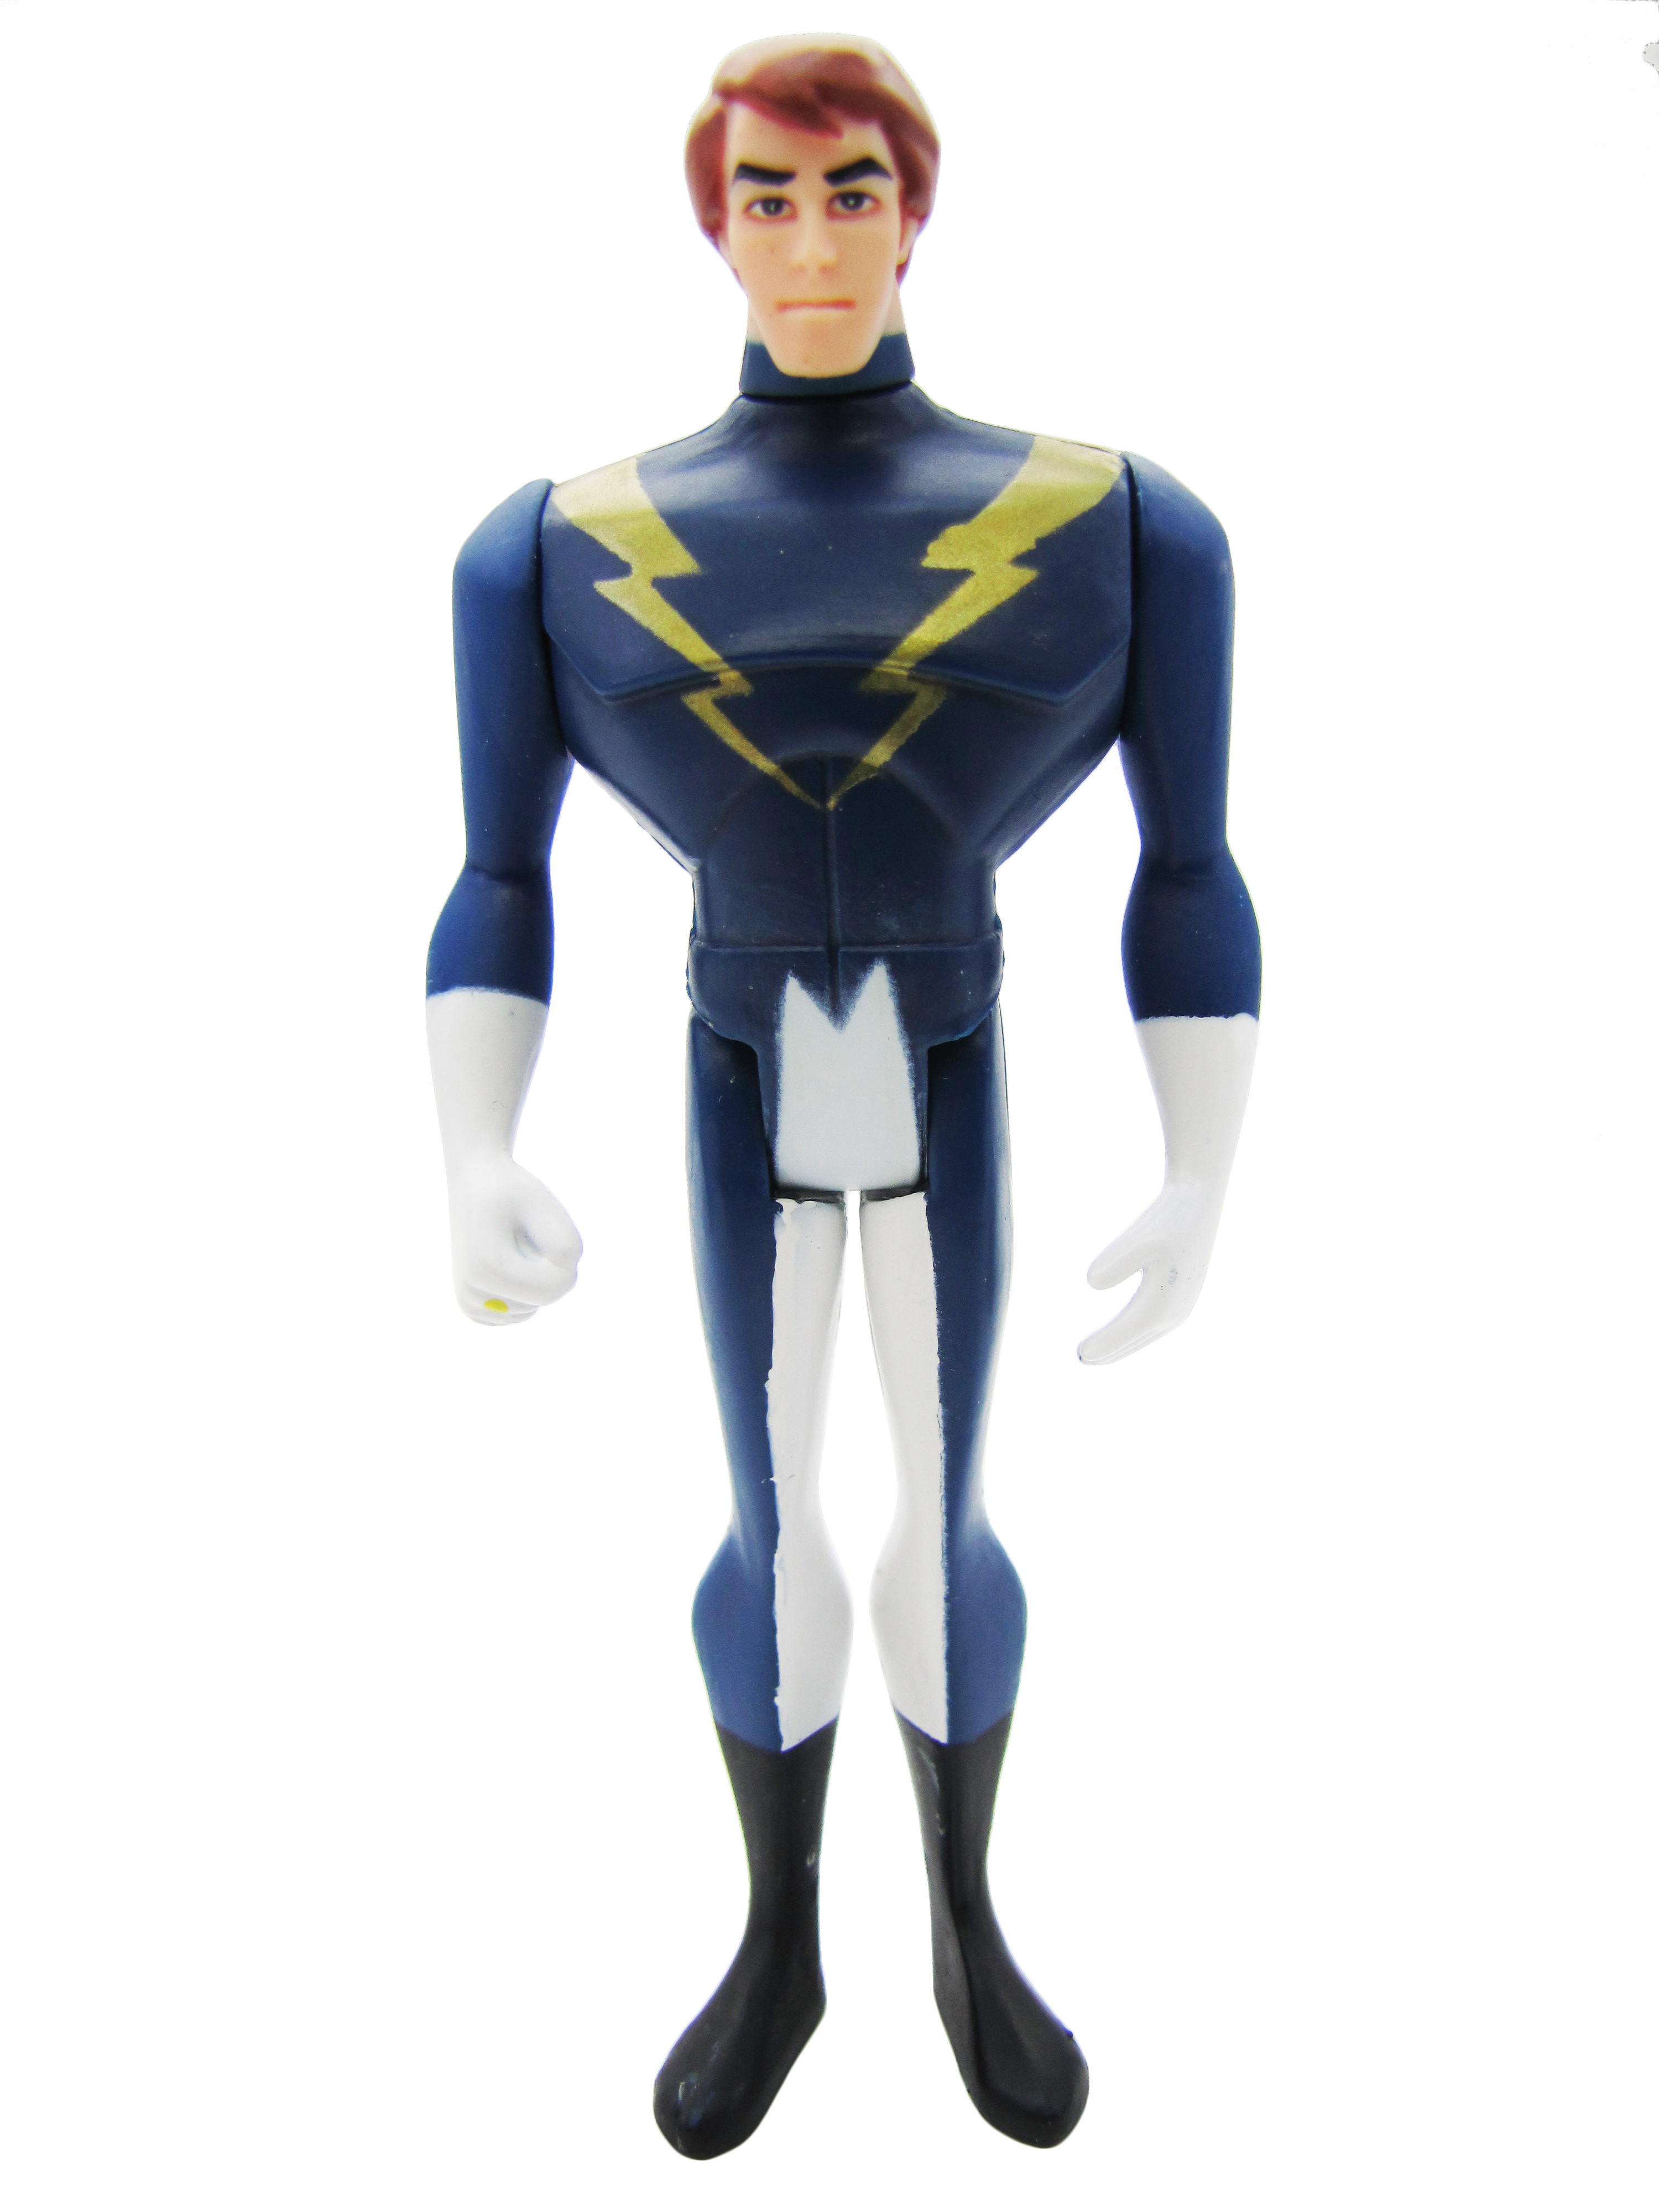 2008 Justice League Unlimited MATTY COLLECTOR LEGIONS SUPERHEROES LIGHTNING LAD